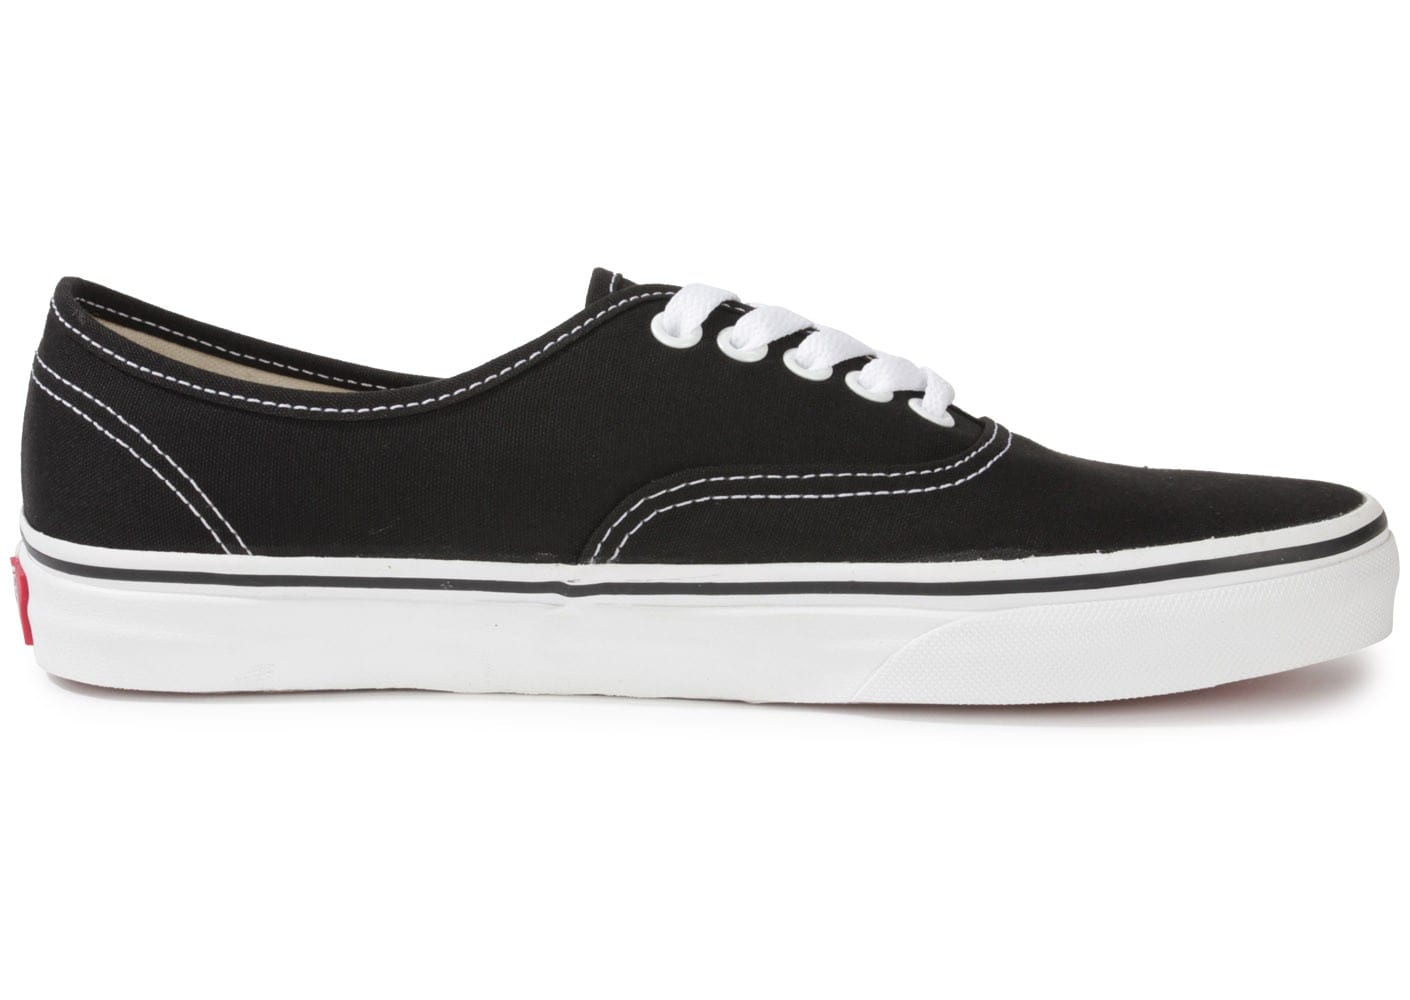 vans authentic noire et blanche chaussures baskets homme chausport. Black Bedroom Furniture Sets. Home Design Ideas